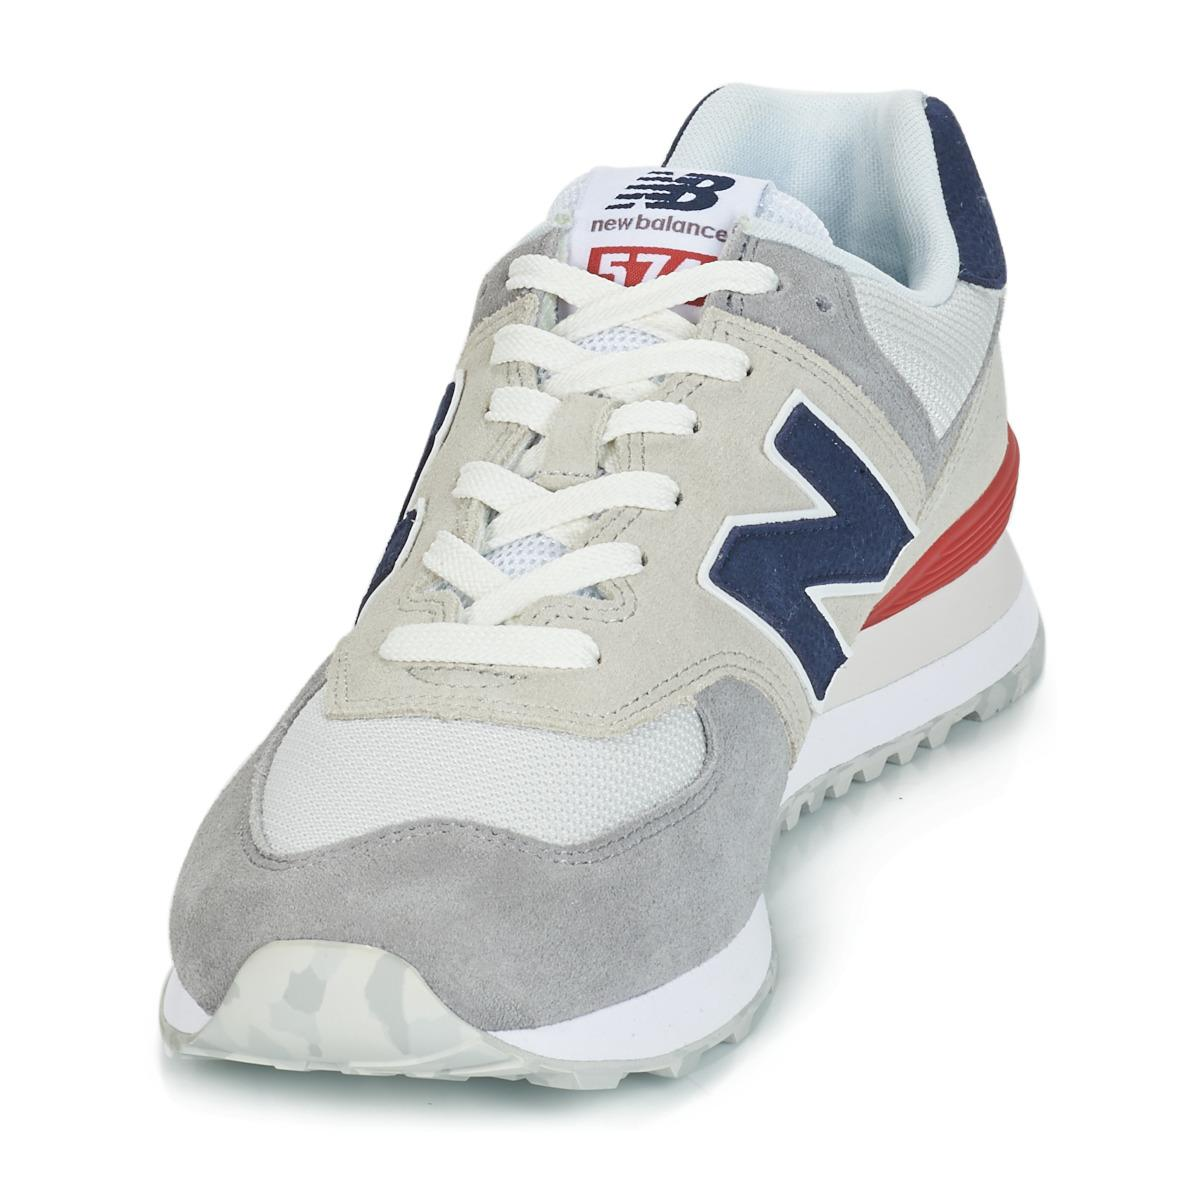 b0882a9e26 in Shoes Balance Ml574 Men In New White for trainers Men's White BATw446q